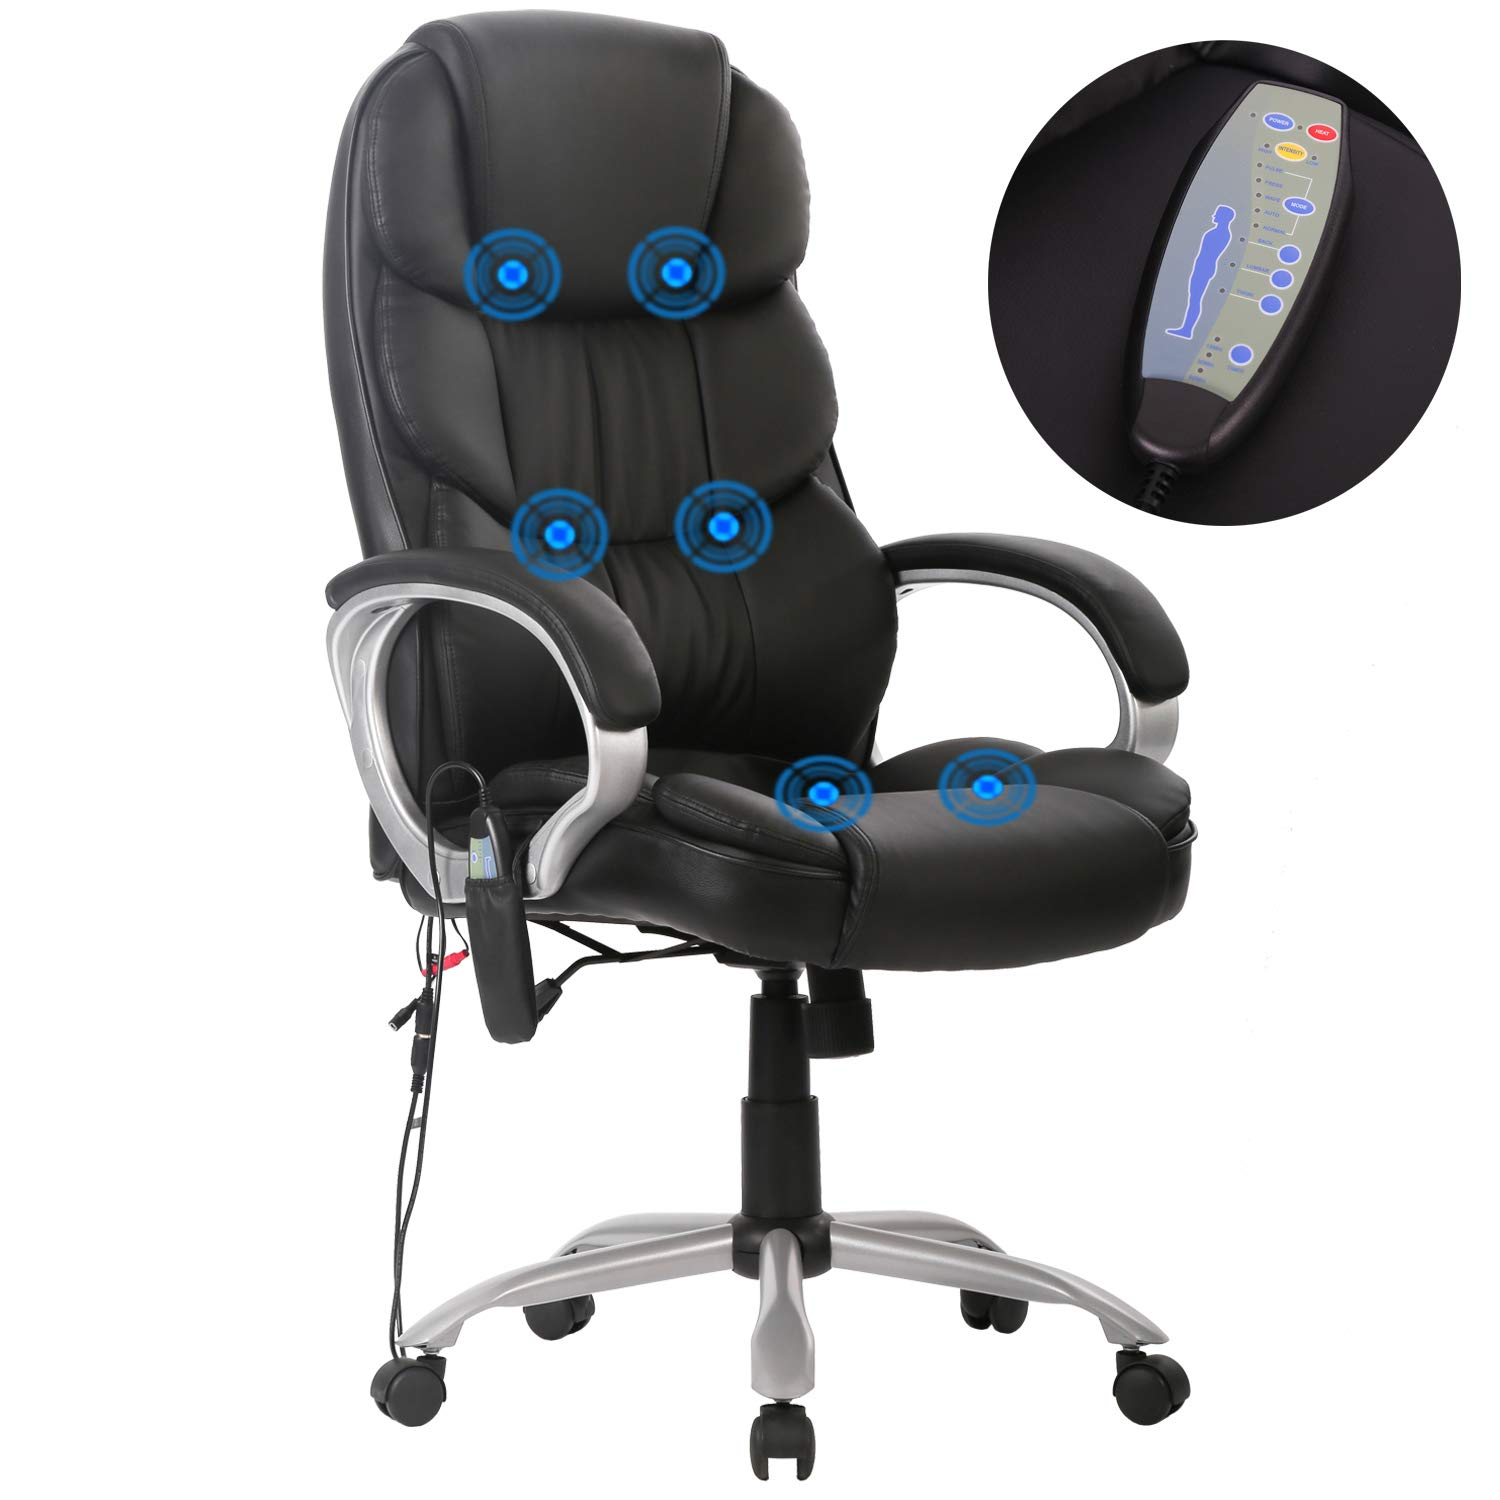 High Back Office Chair Ergonomic Massage Chair Desk PU Leather Computer Chair Task Rolling Swivel Adjustable Stool Executive Chair with Lumbar Support Armrest for Women&Men by BestMassage